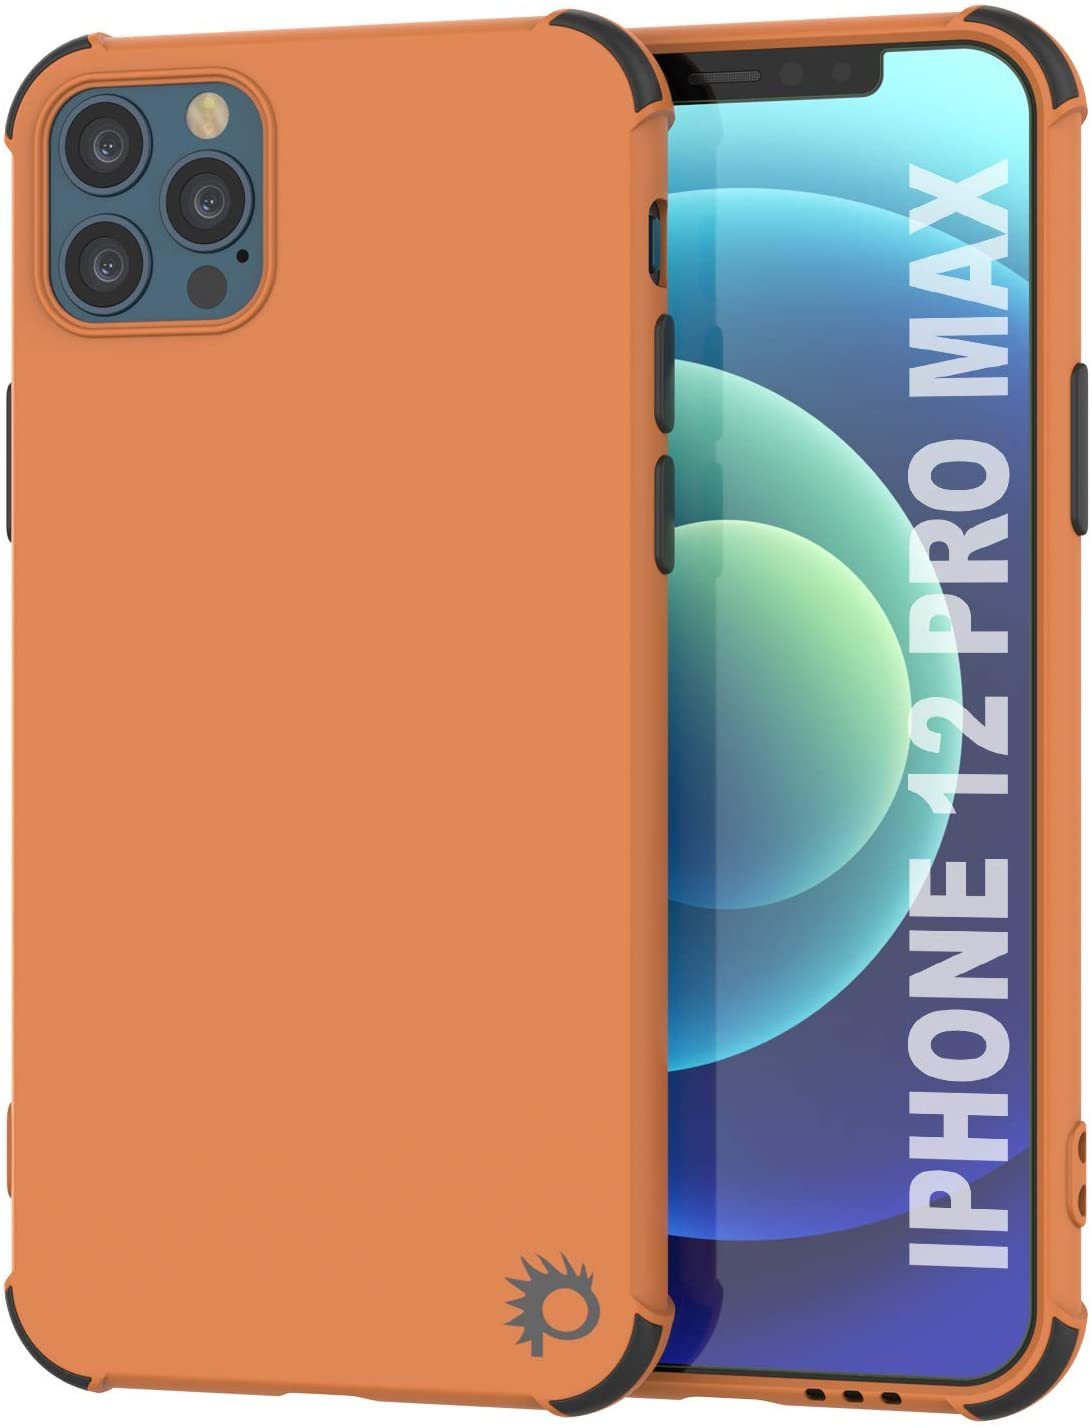 Punkcase Protective & Lightweight TPU Case [Sunshine Series] for iPhone 12 Pro Max [Orange]